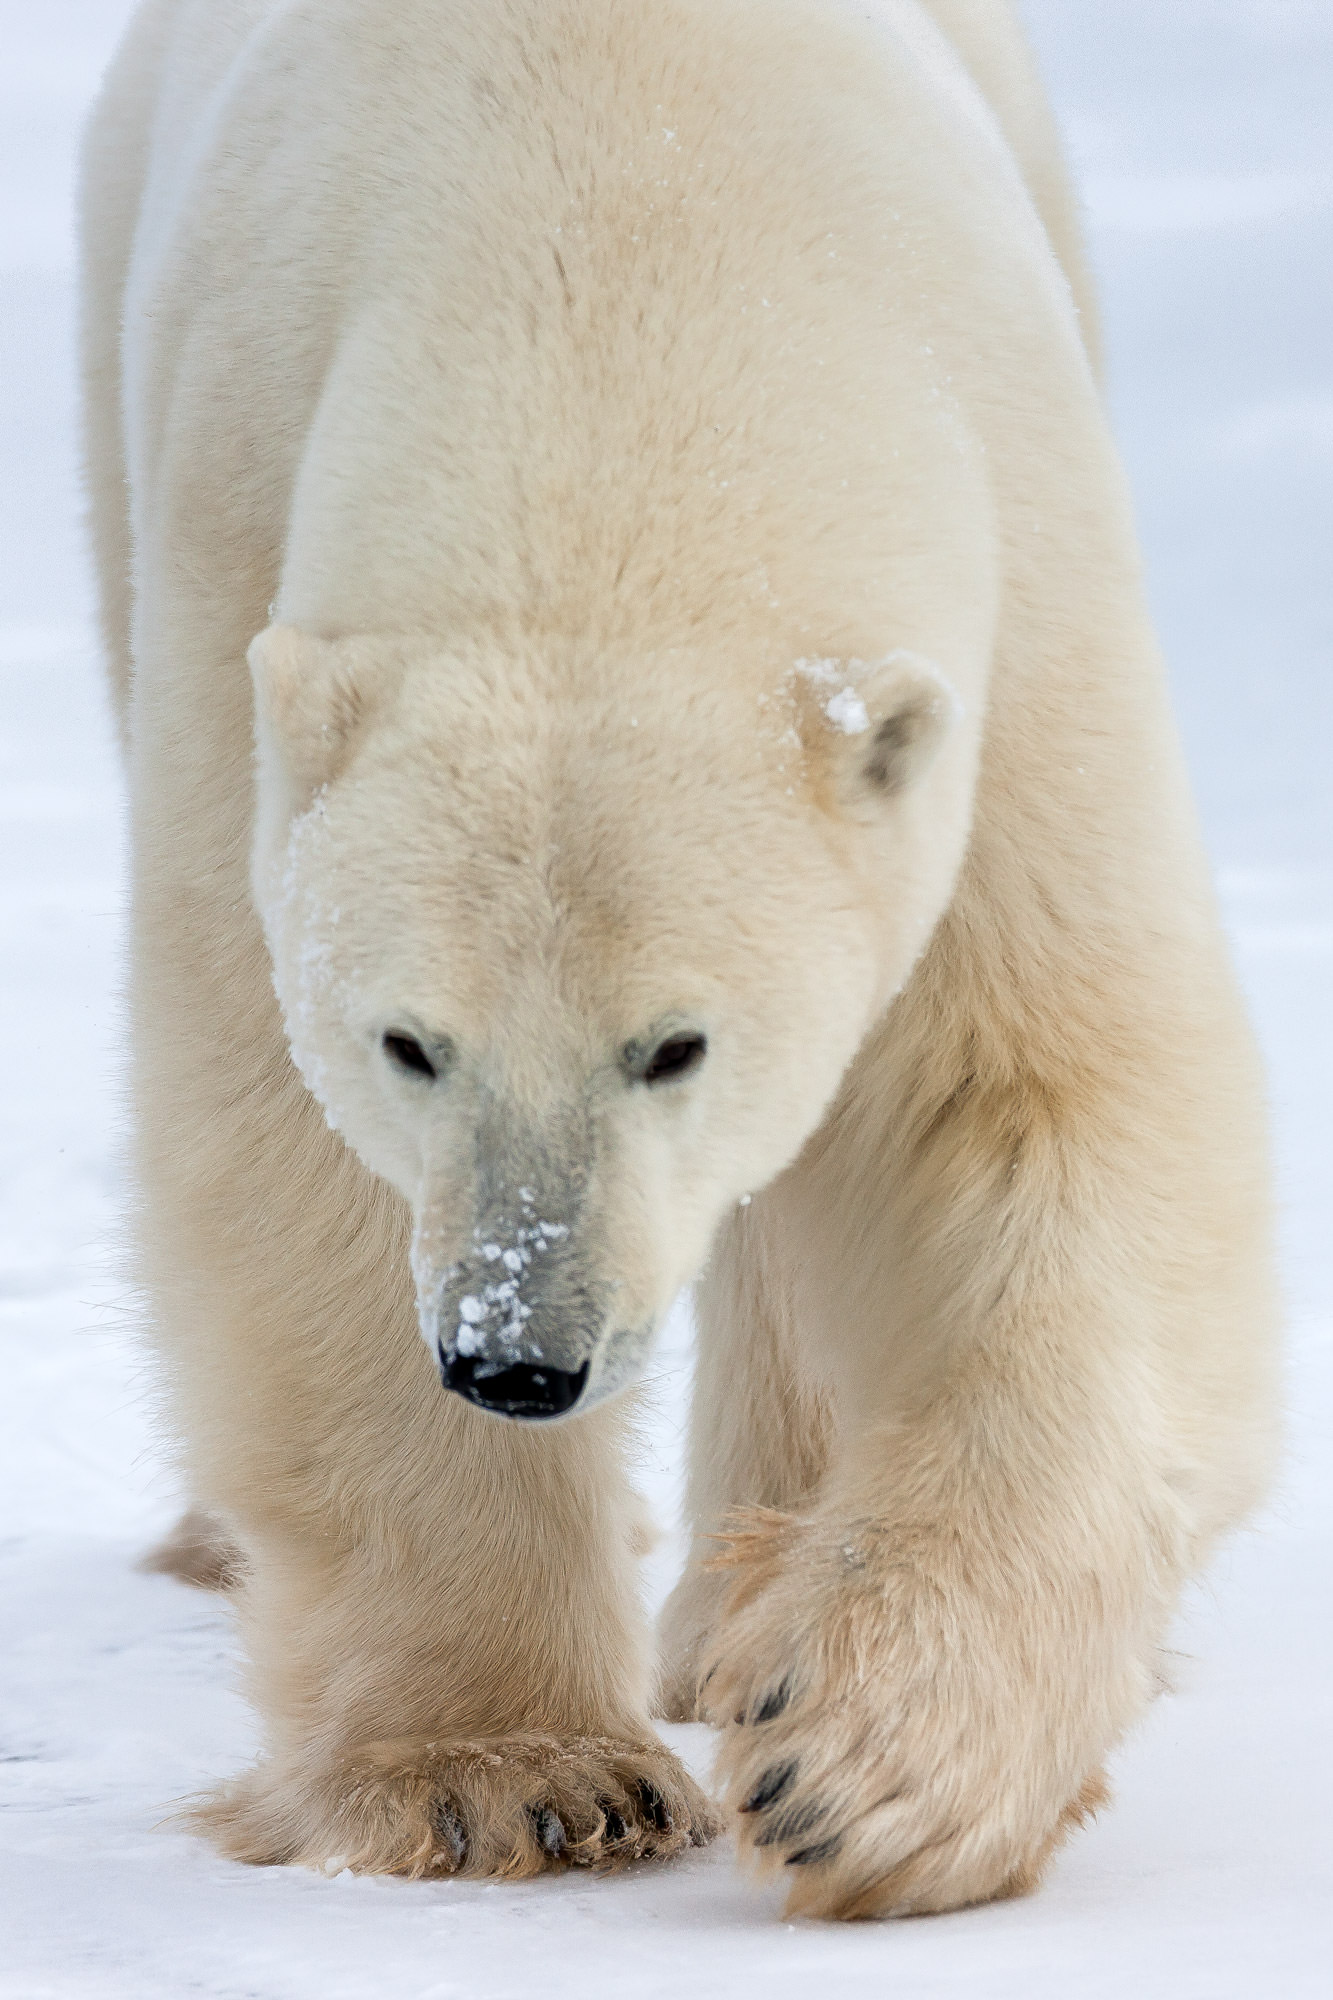 Bear, Polar Bear, Churchill, Manitoba, limited edition, photograph. fine art, wildlife, photo